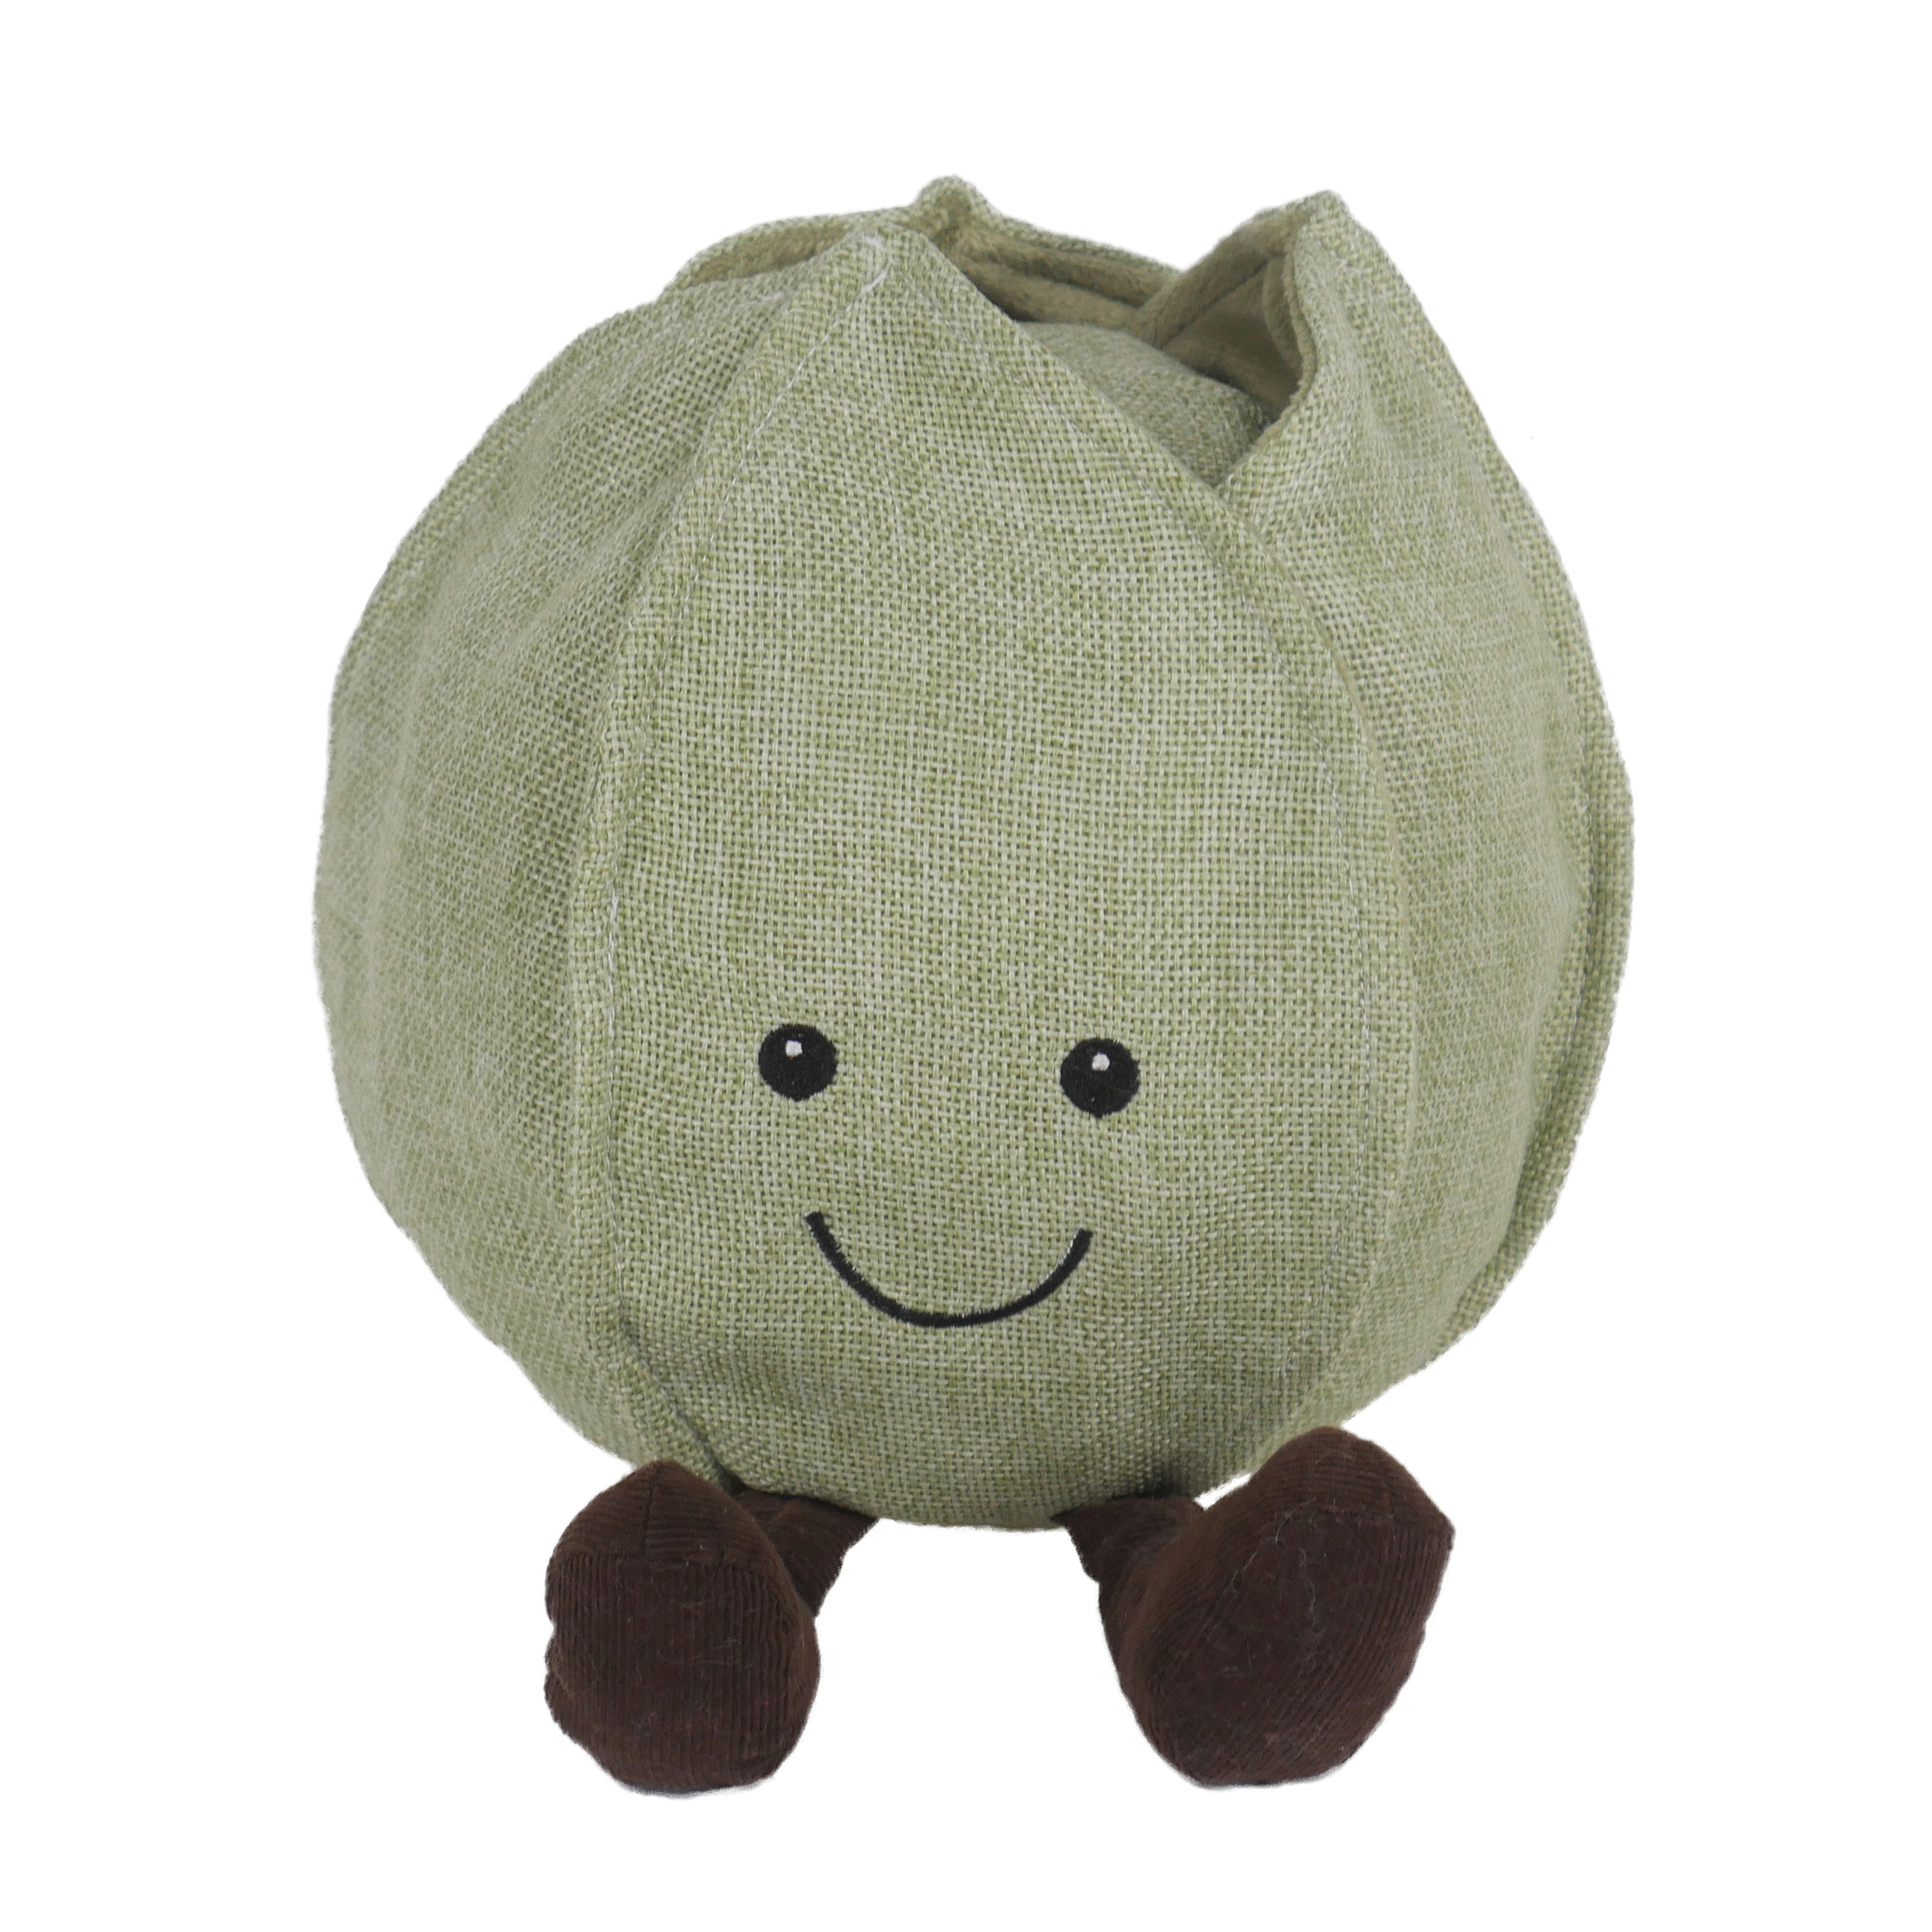 Brussel sprout toy